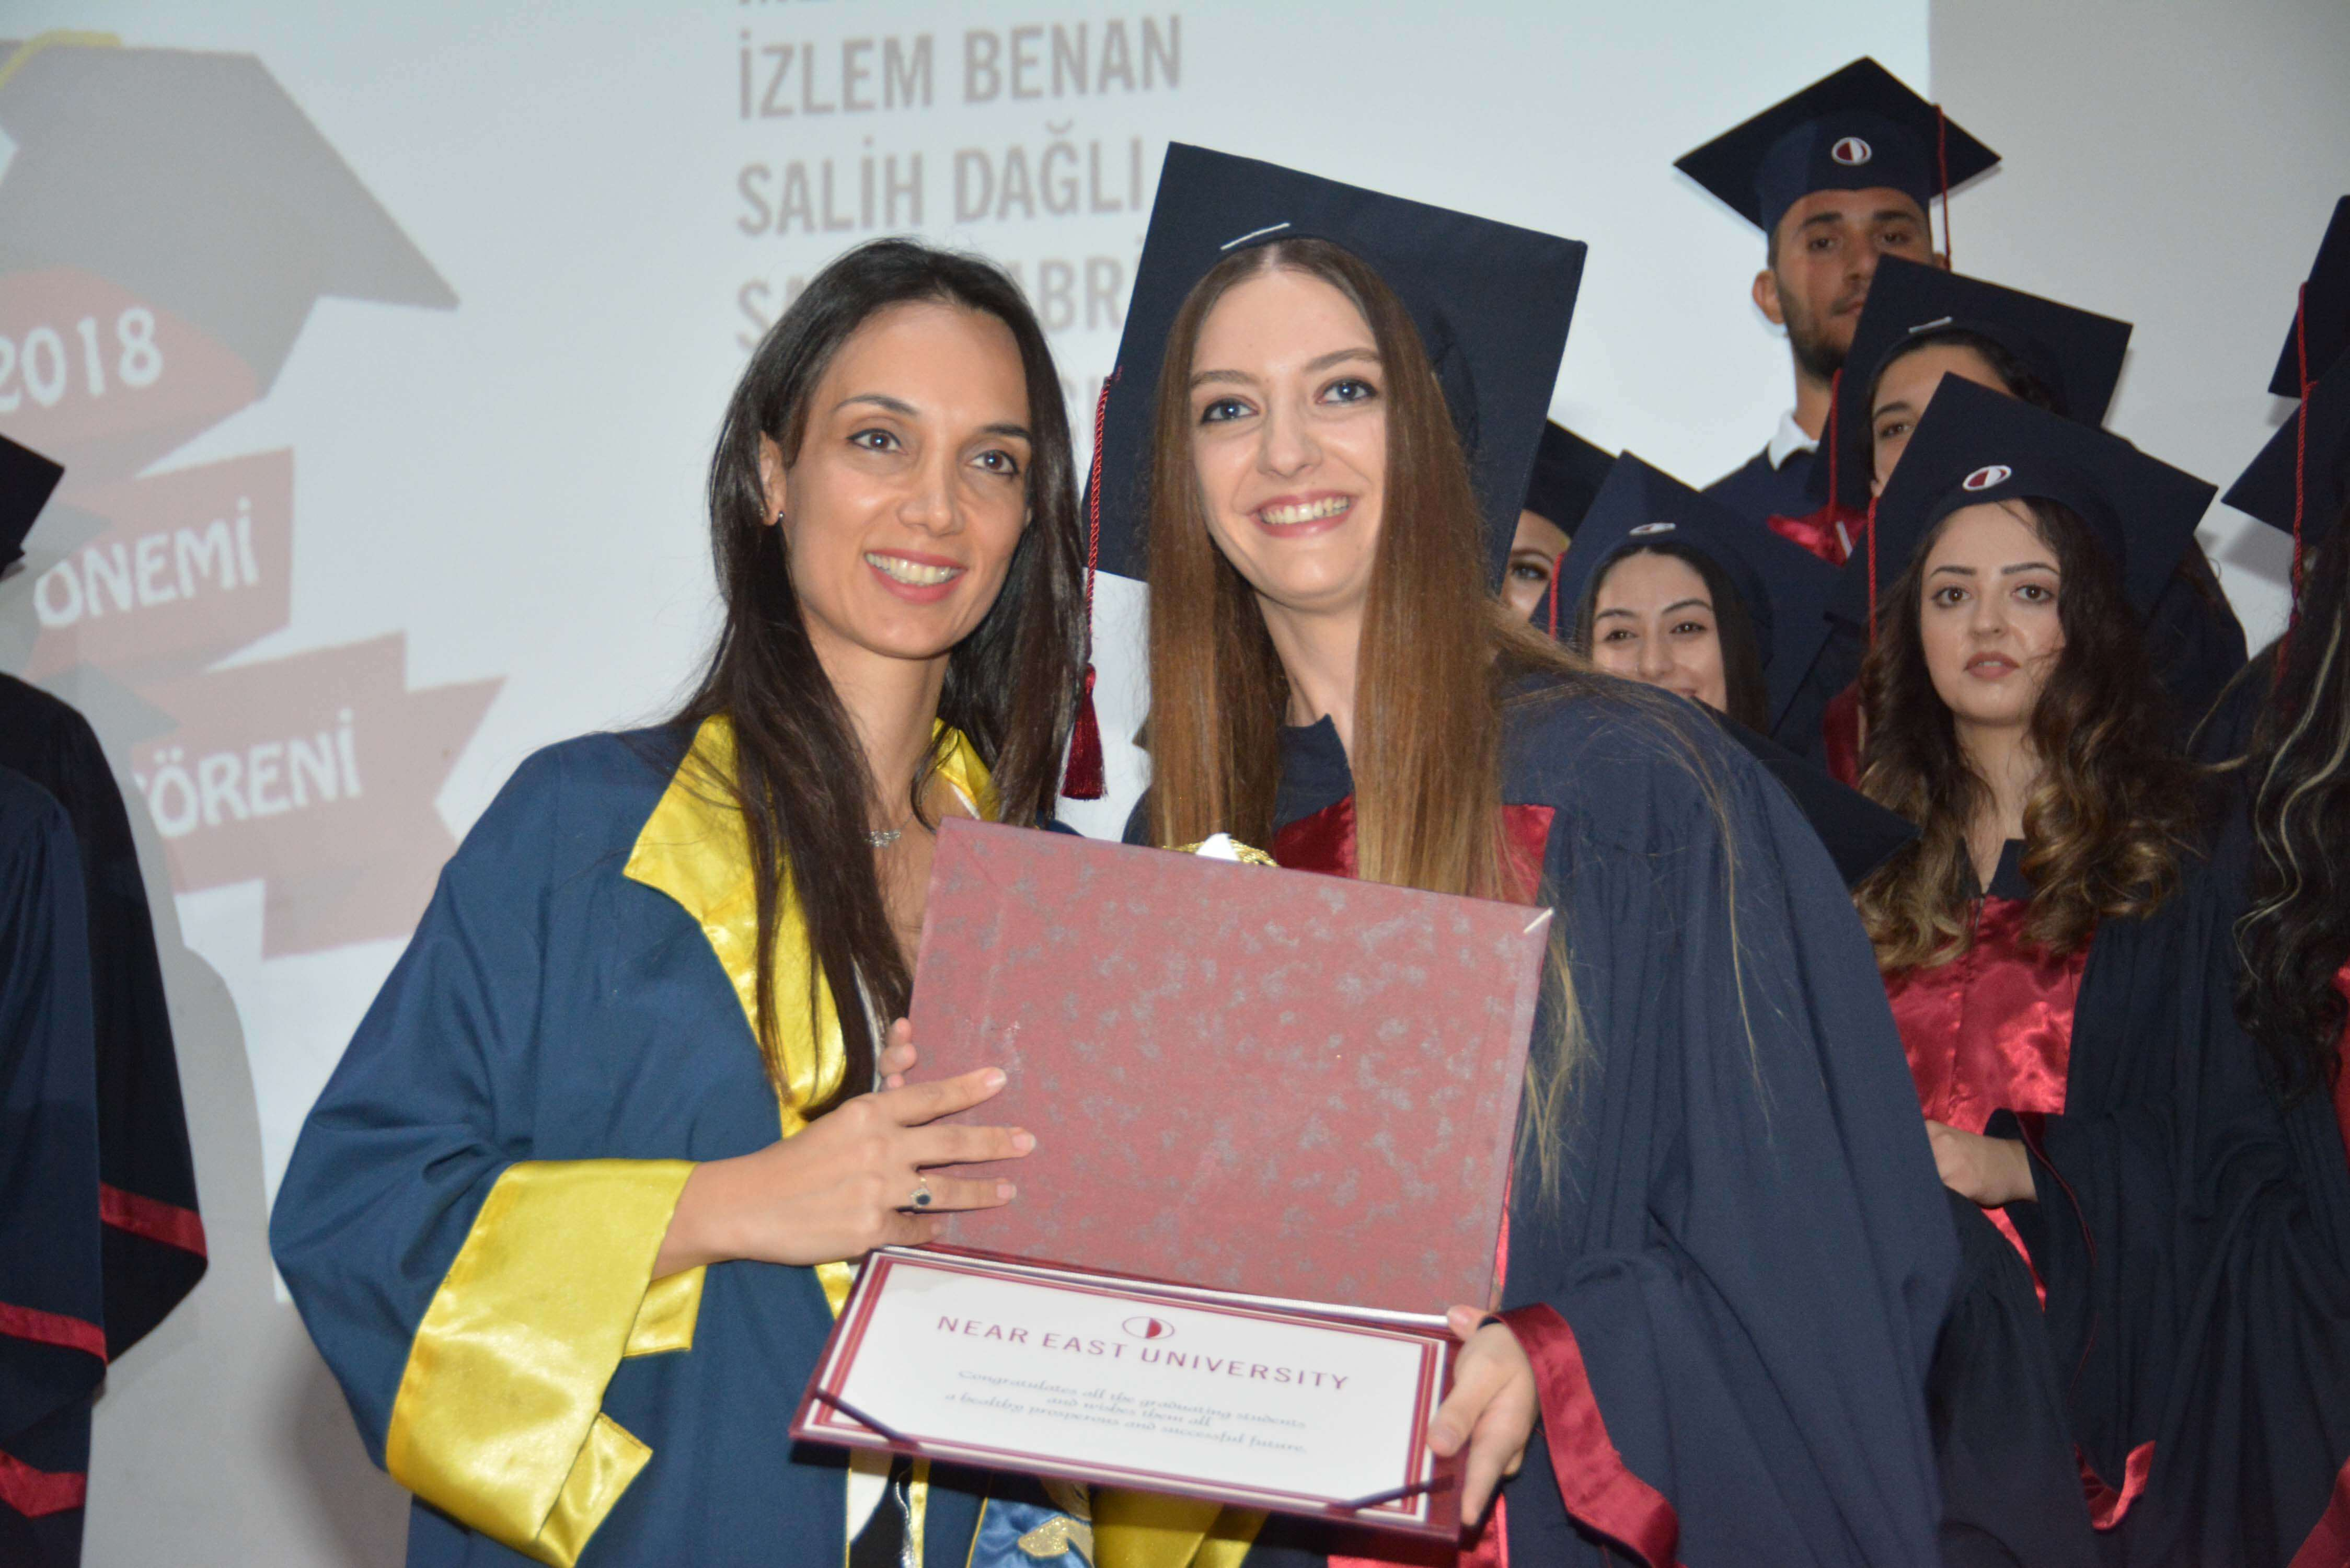 Graduation Ceremony of the Near East University Faculty of Communication was realized